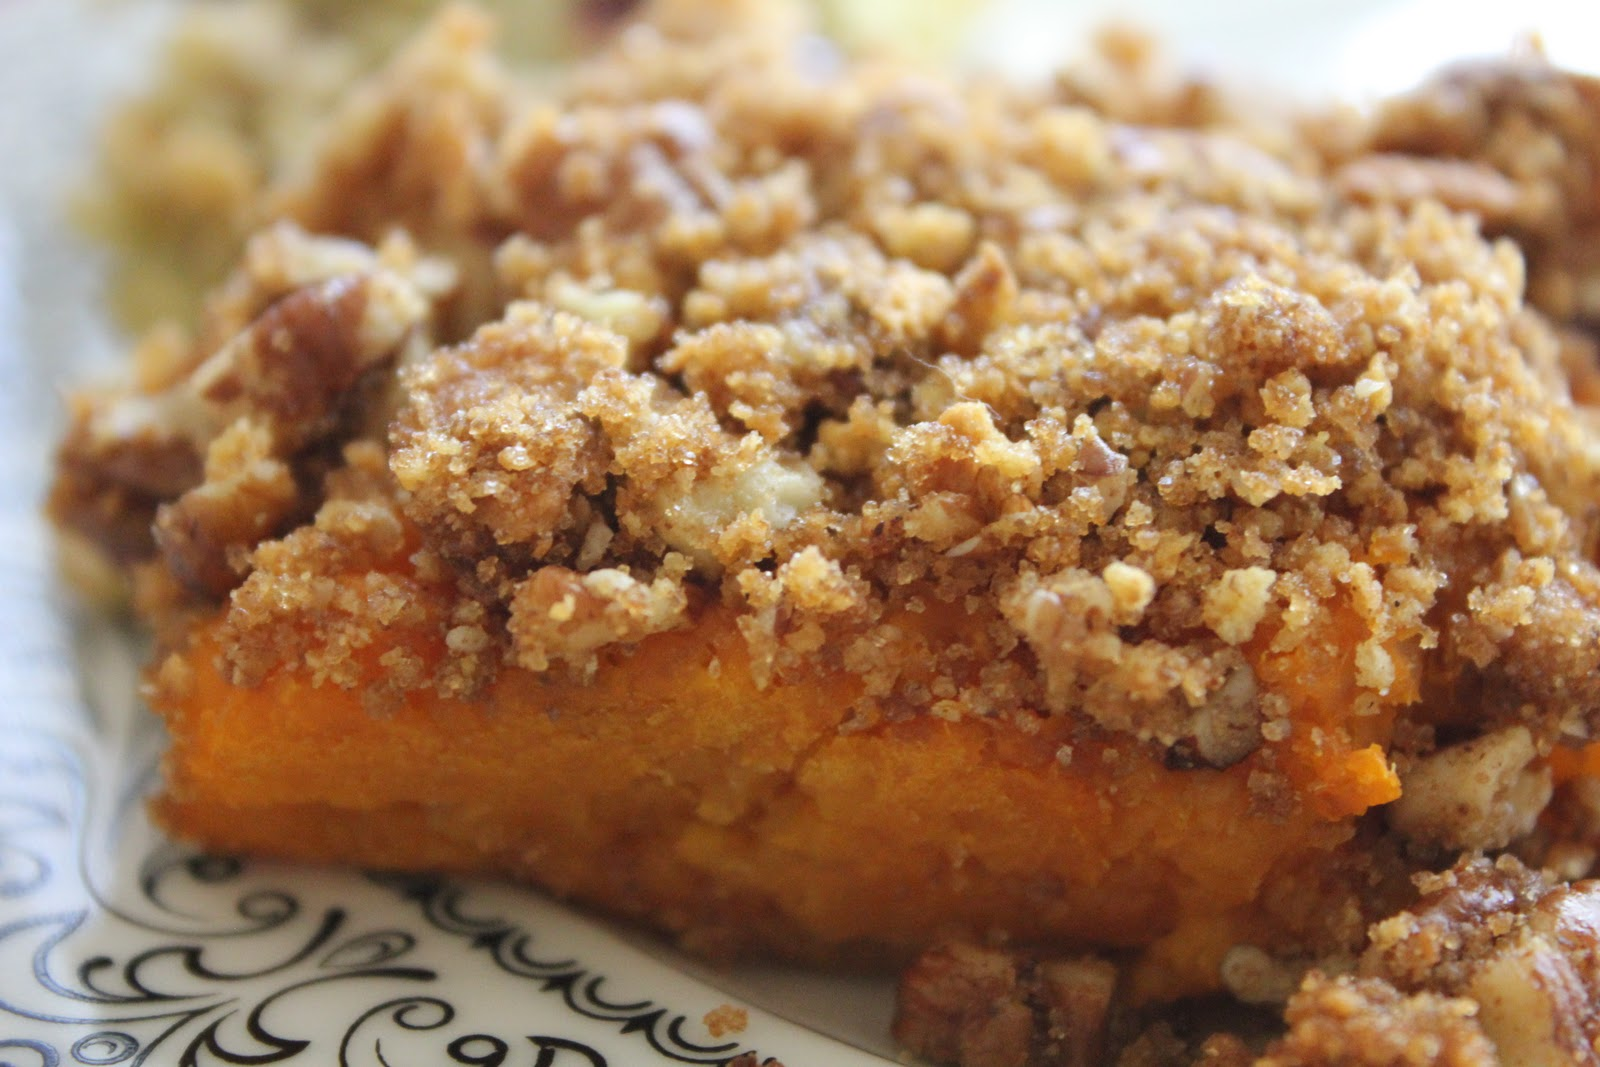 ... made with love: Pampered Chef- Pecan Crumble Sweet Potato Casserole